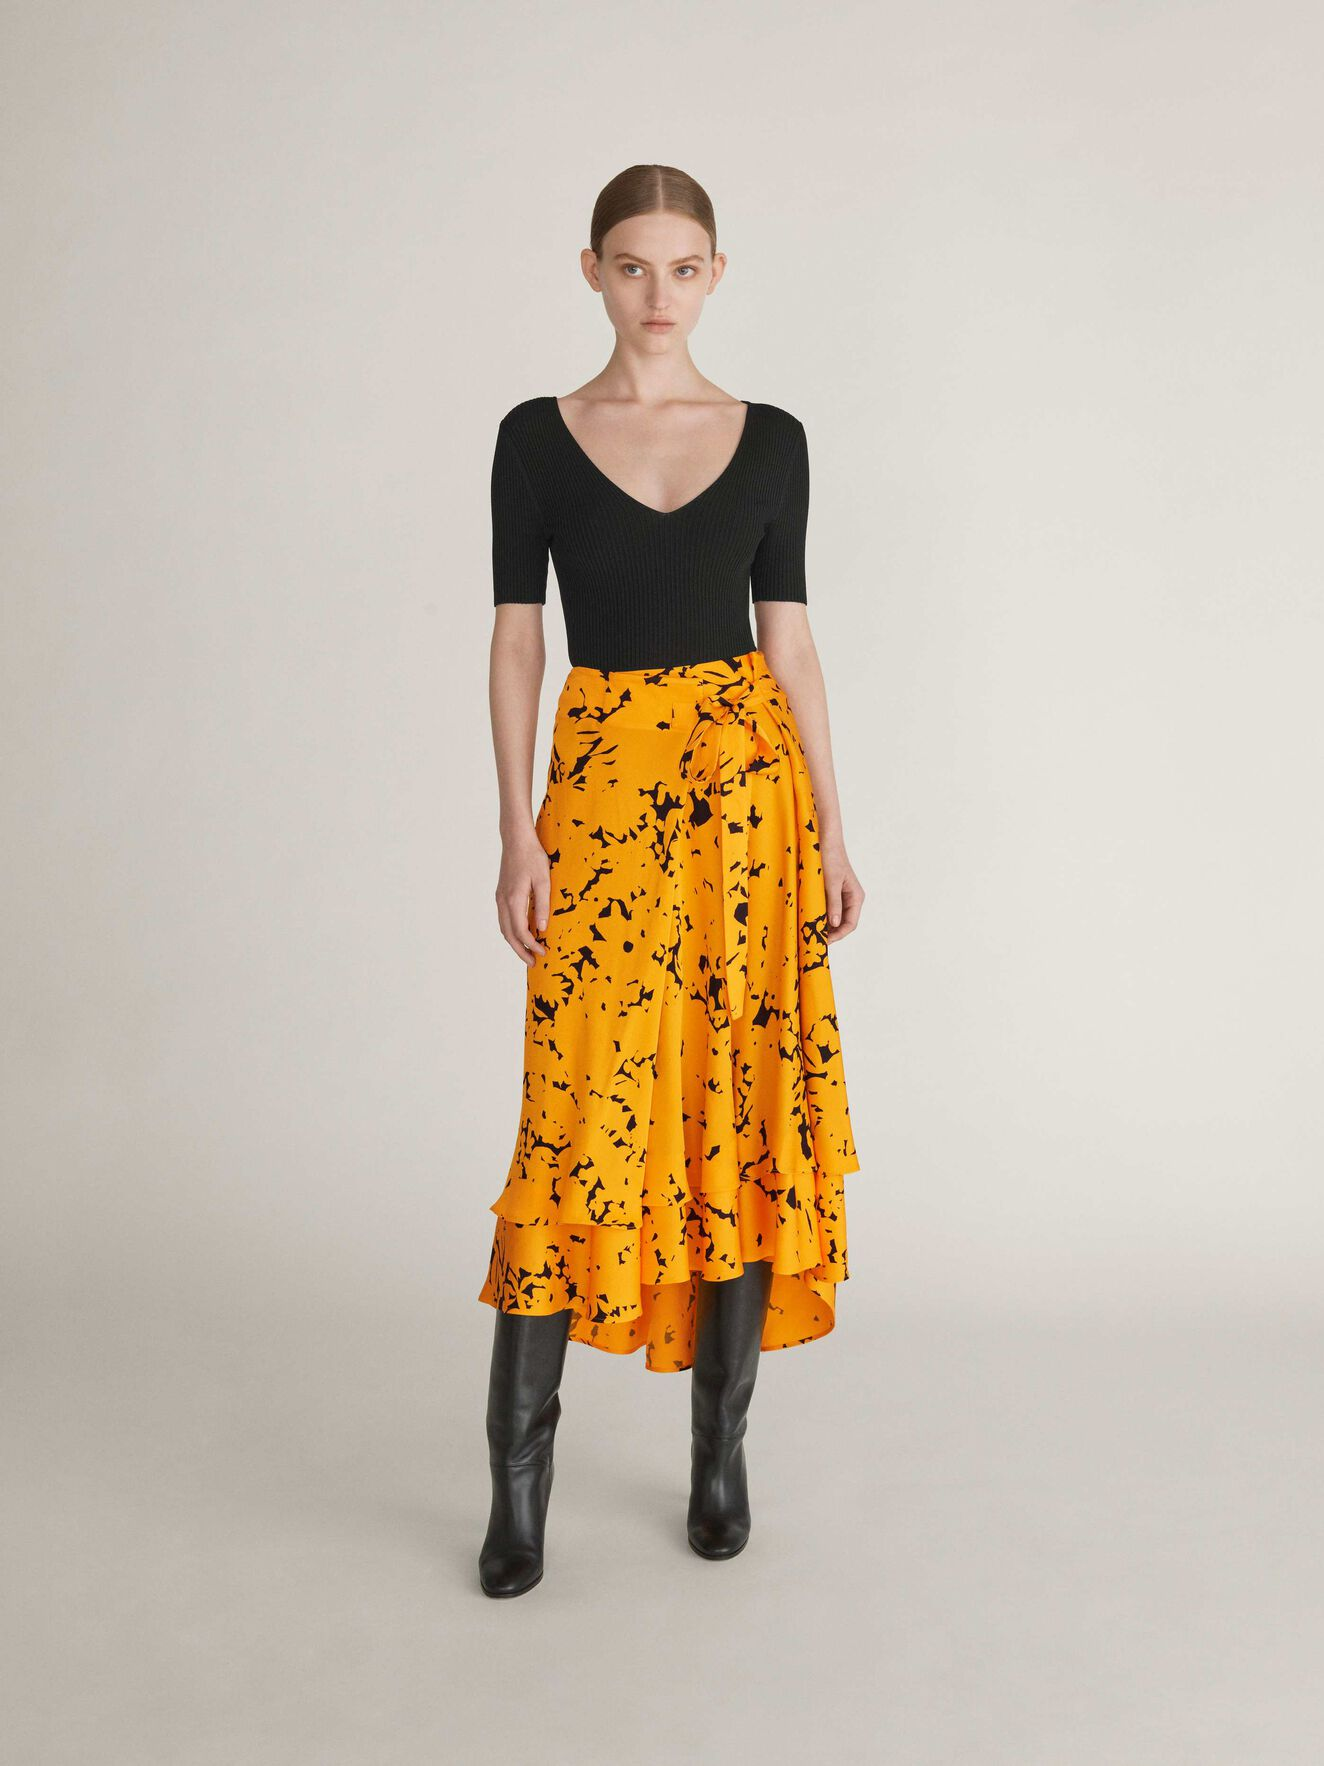 Cabby P Skirt in ARTWORK from Tiger of Sweden